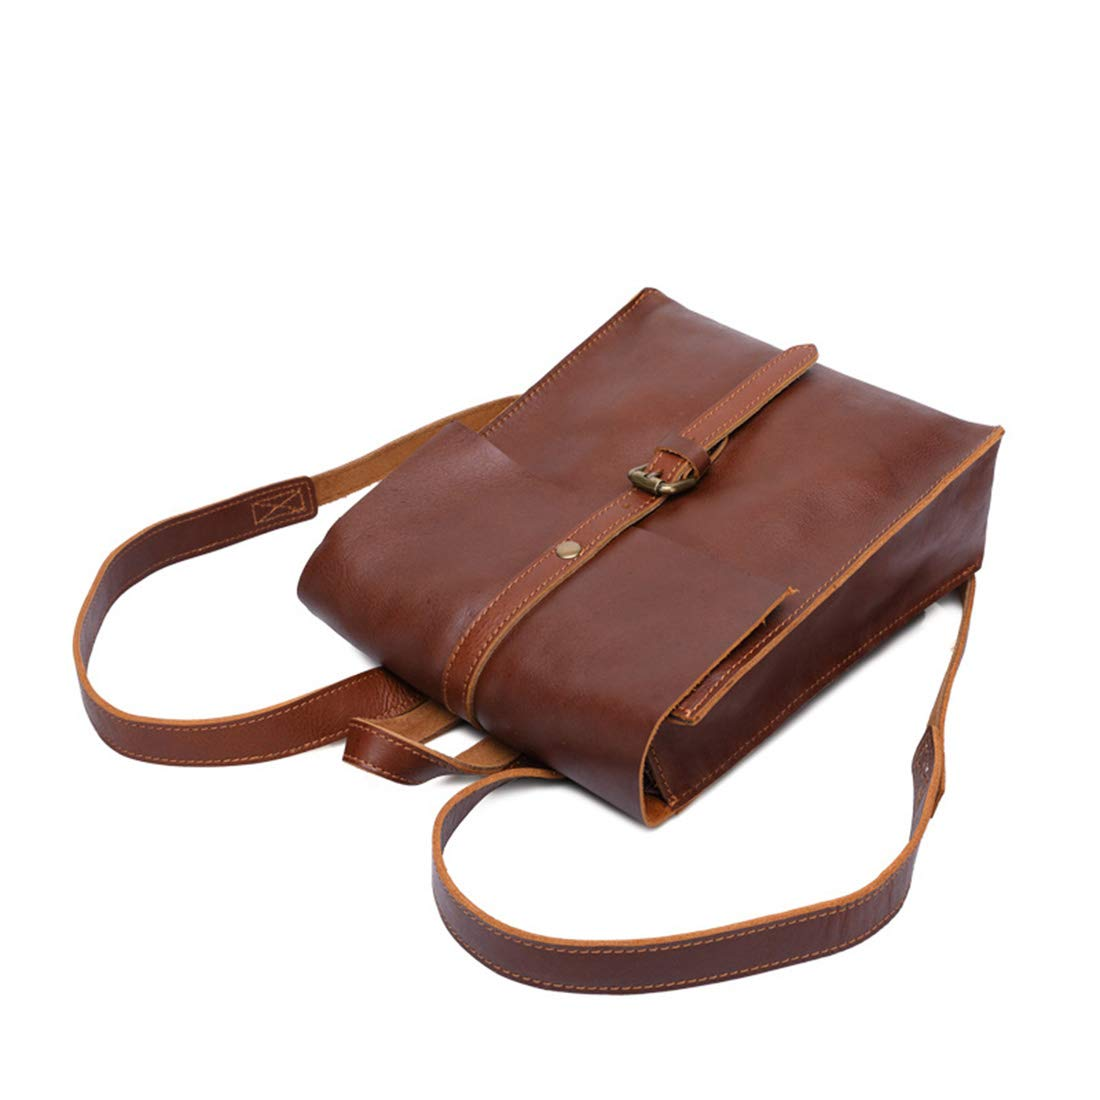 MATCHANT Retro Men//Women Backpack Waterproof Zipper Genuine Leather Ipad Bags Travel Shopping Color : Light Oil Color